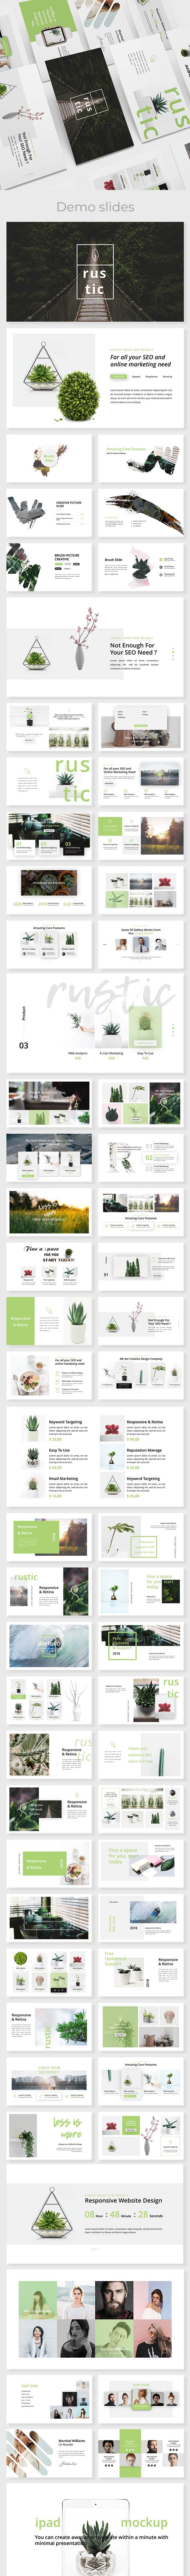 rustic minimal powerpoint template by este studio graphicriver